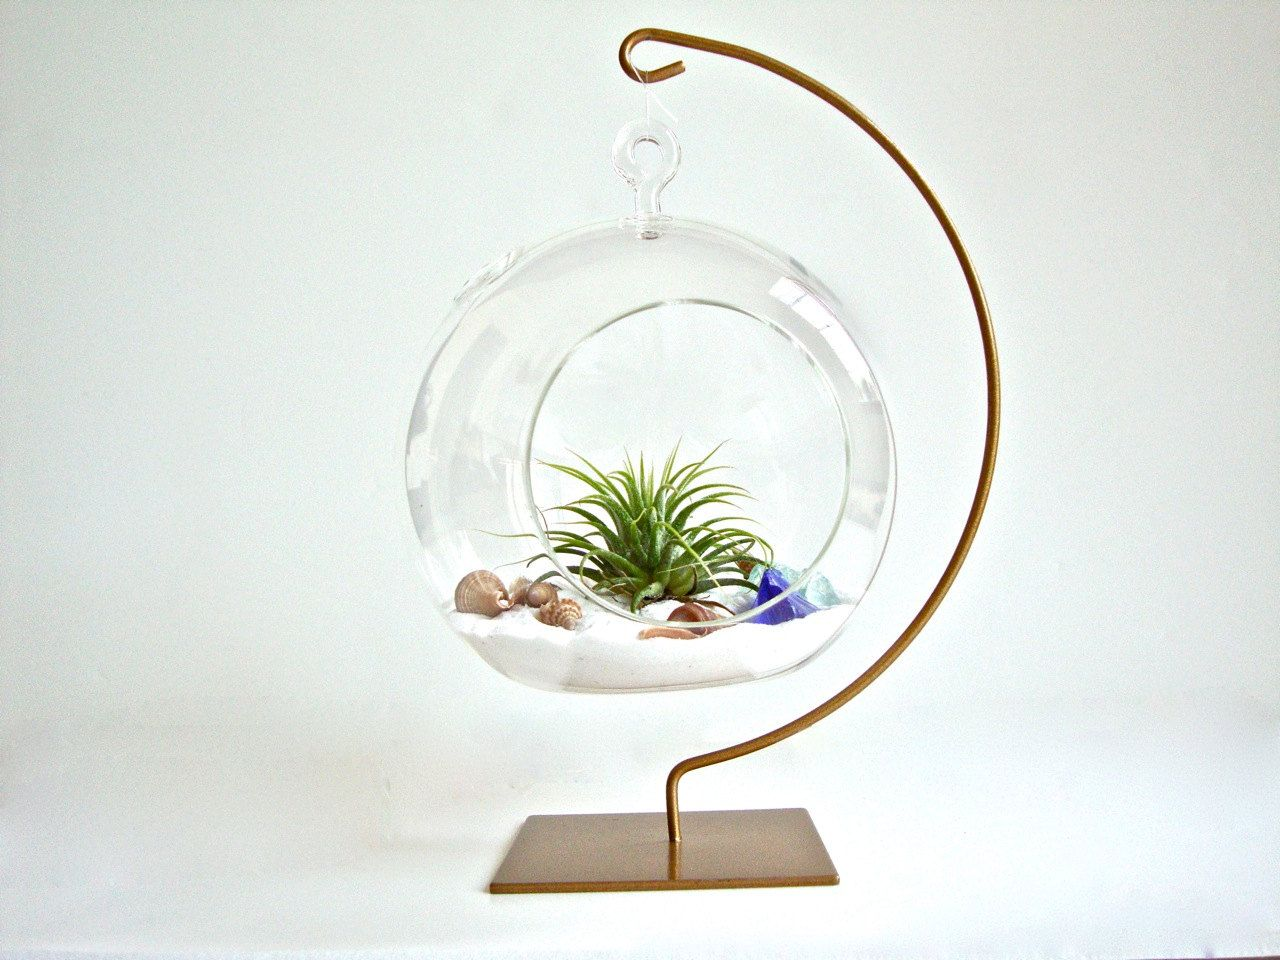 Large Round Glass Air Plant Succulent Moss & Cactus by DrabDesign | My  little urban garden :) | Pinterest | Round glass, Air plants and Terraria